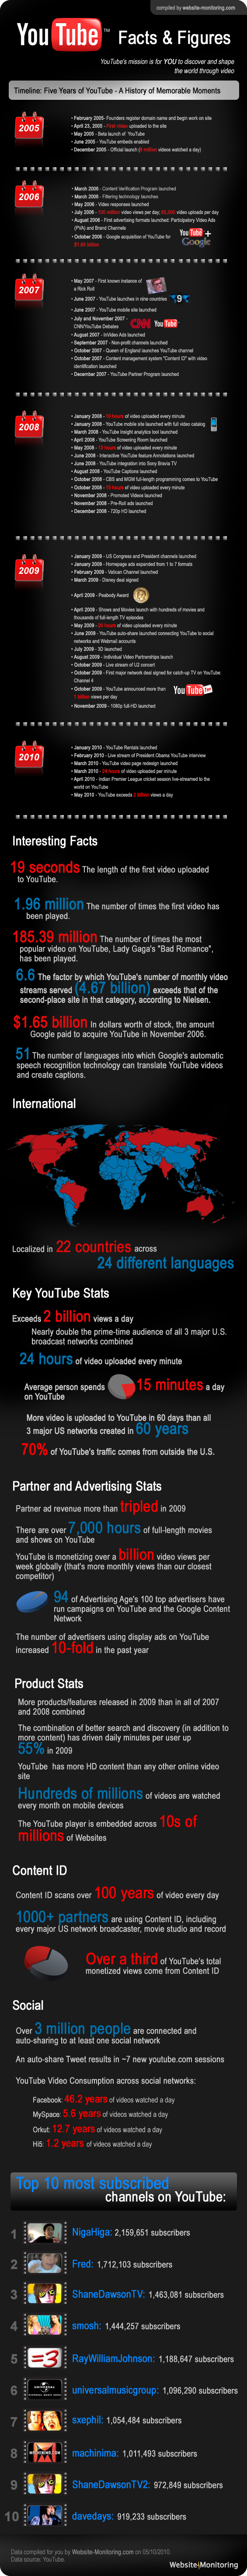 youtube facts and figures graphic